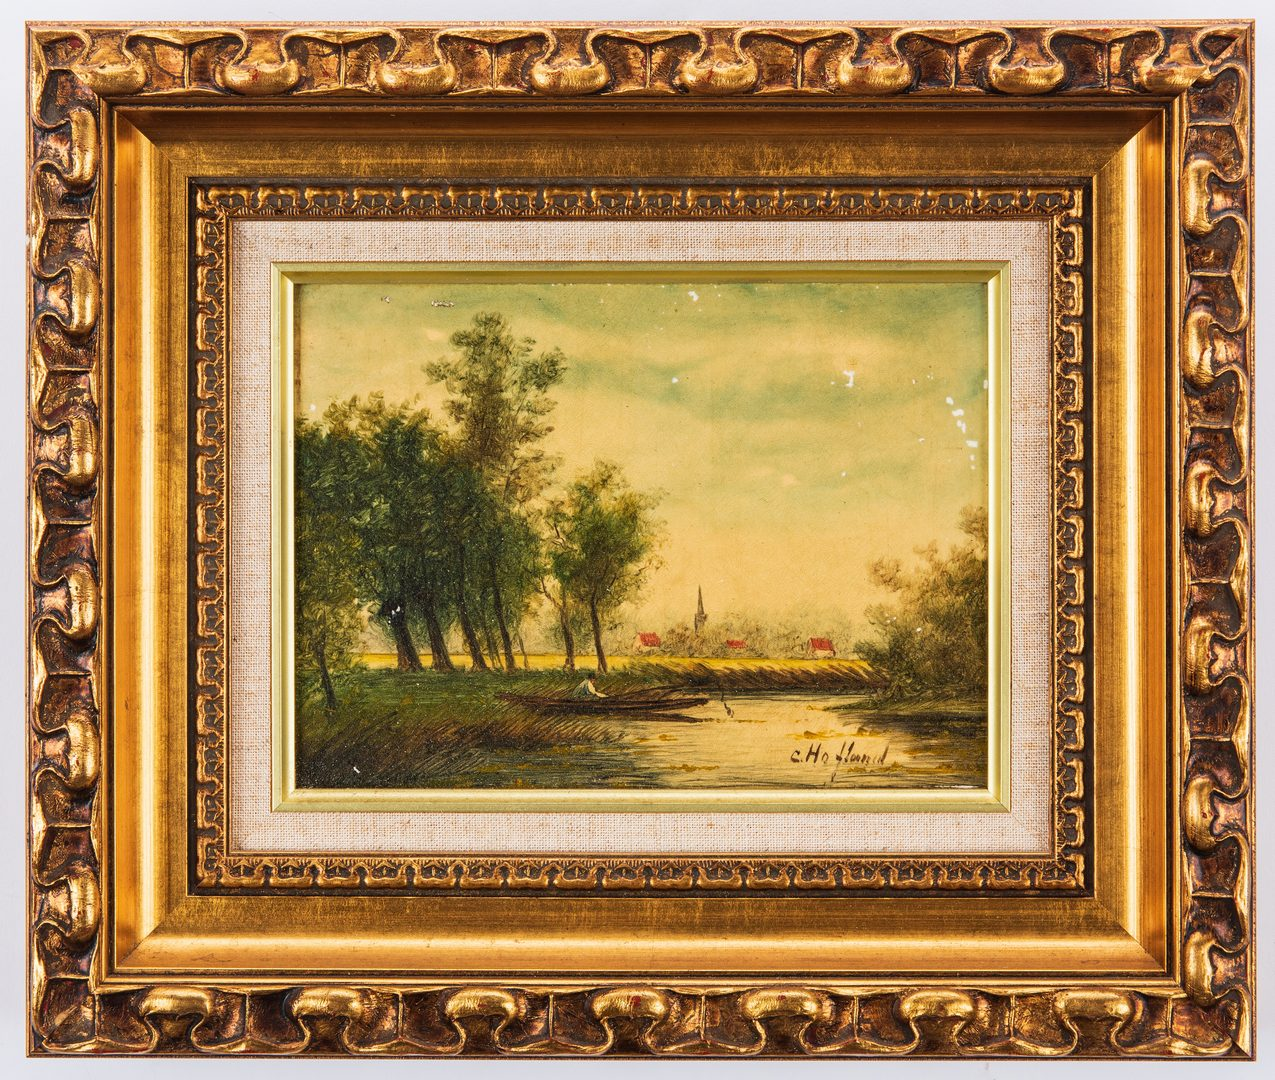 Lot 81: 2 European Miniature Landscape Paintings